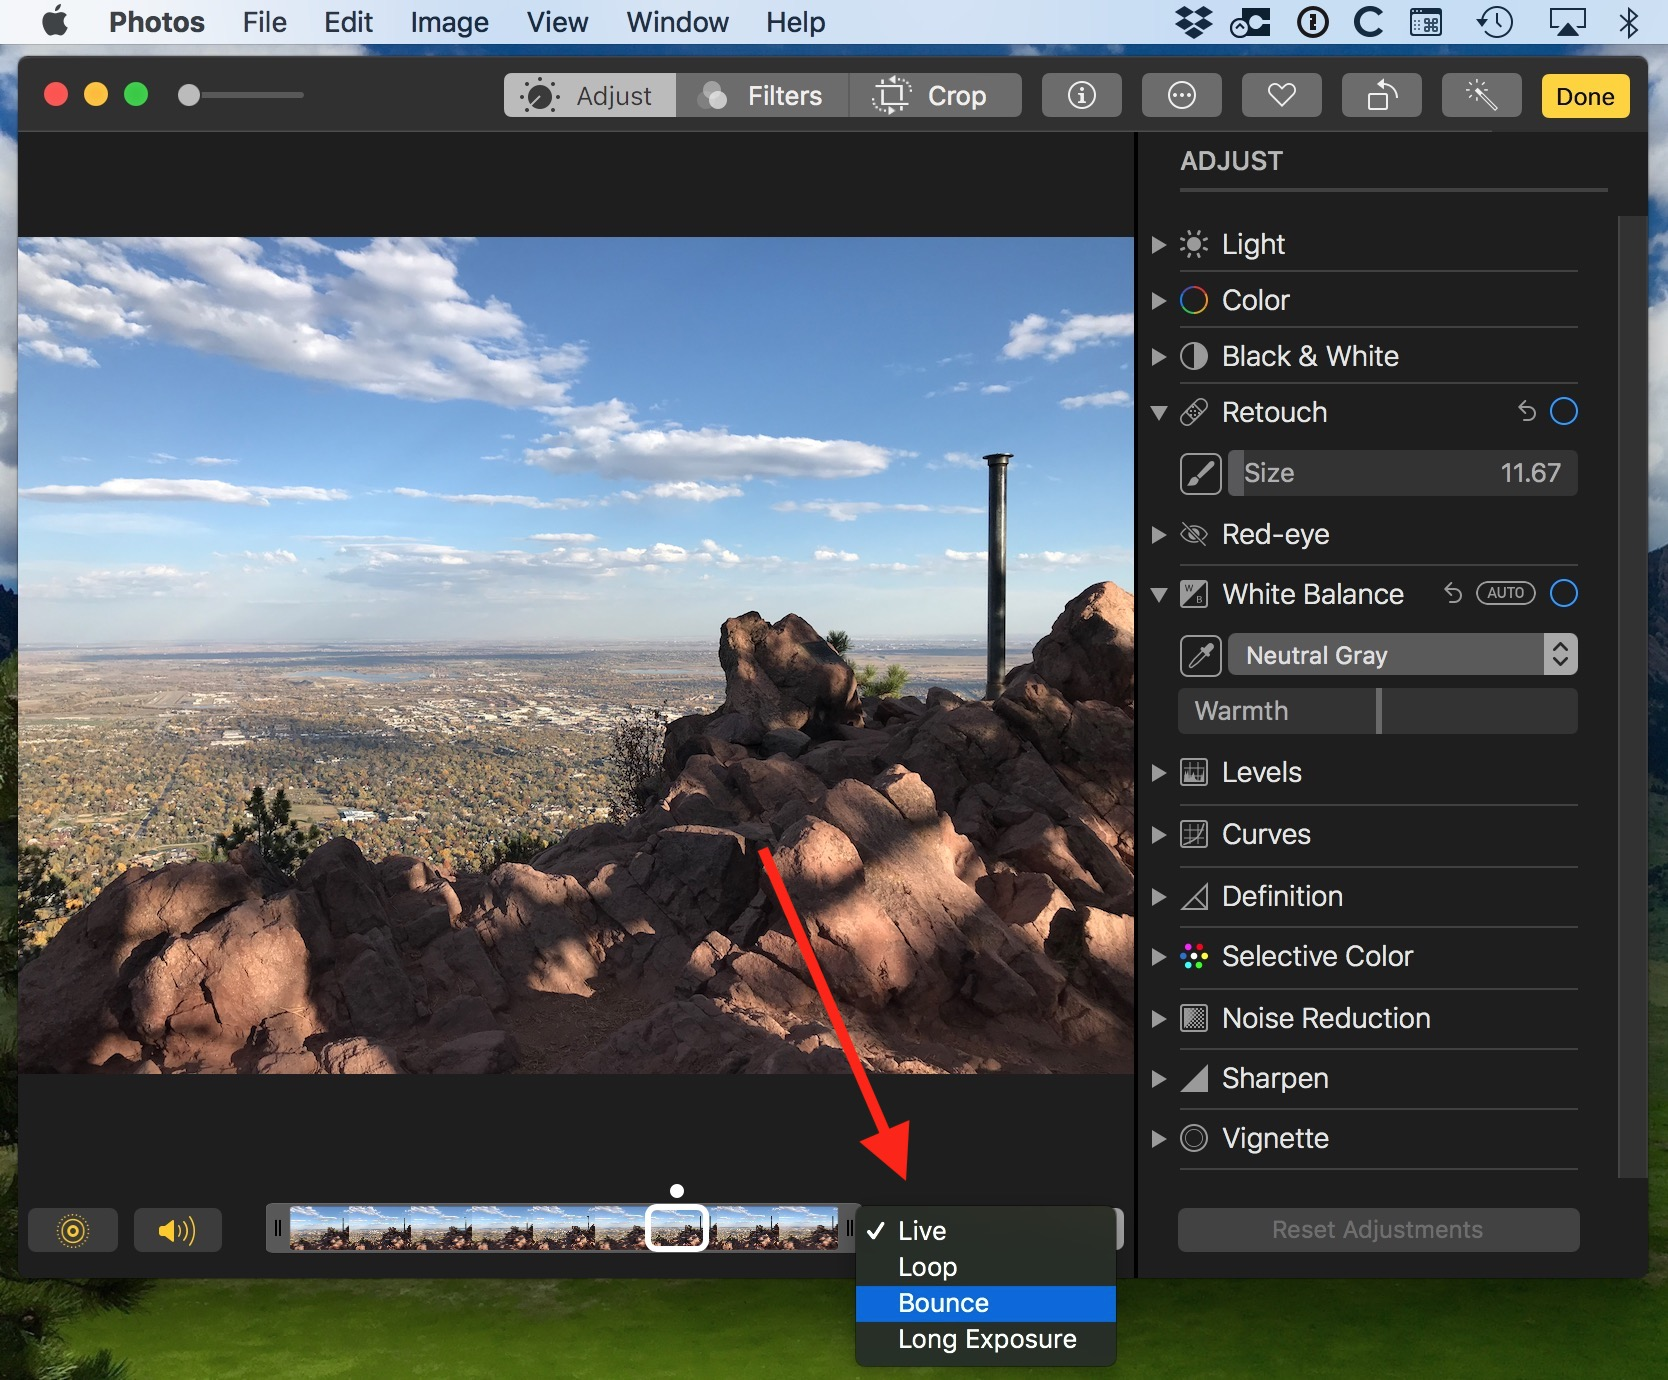 Change Live Photo Effect and use Loop or Bounce for animated GIF in Mac Photos app